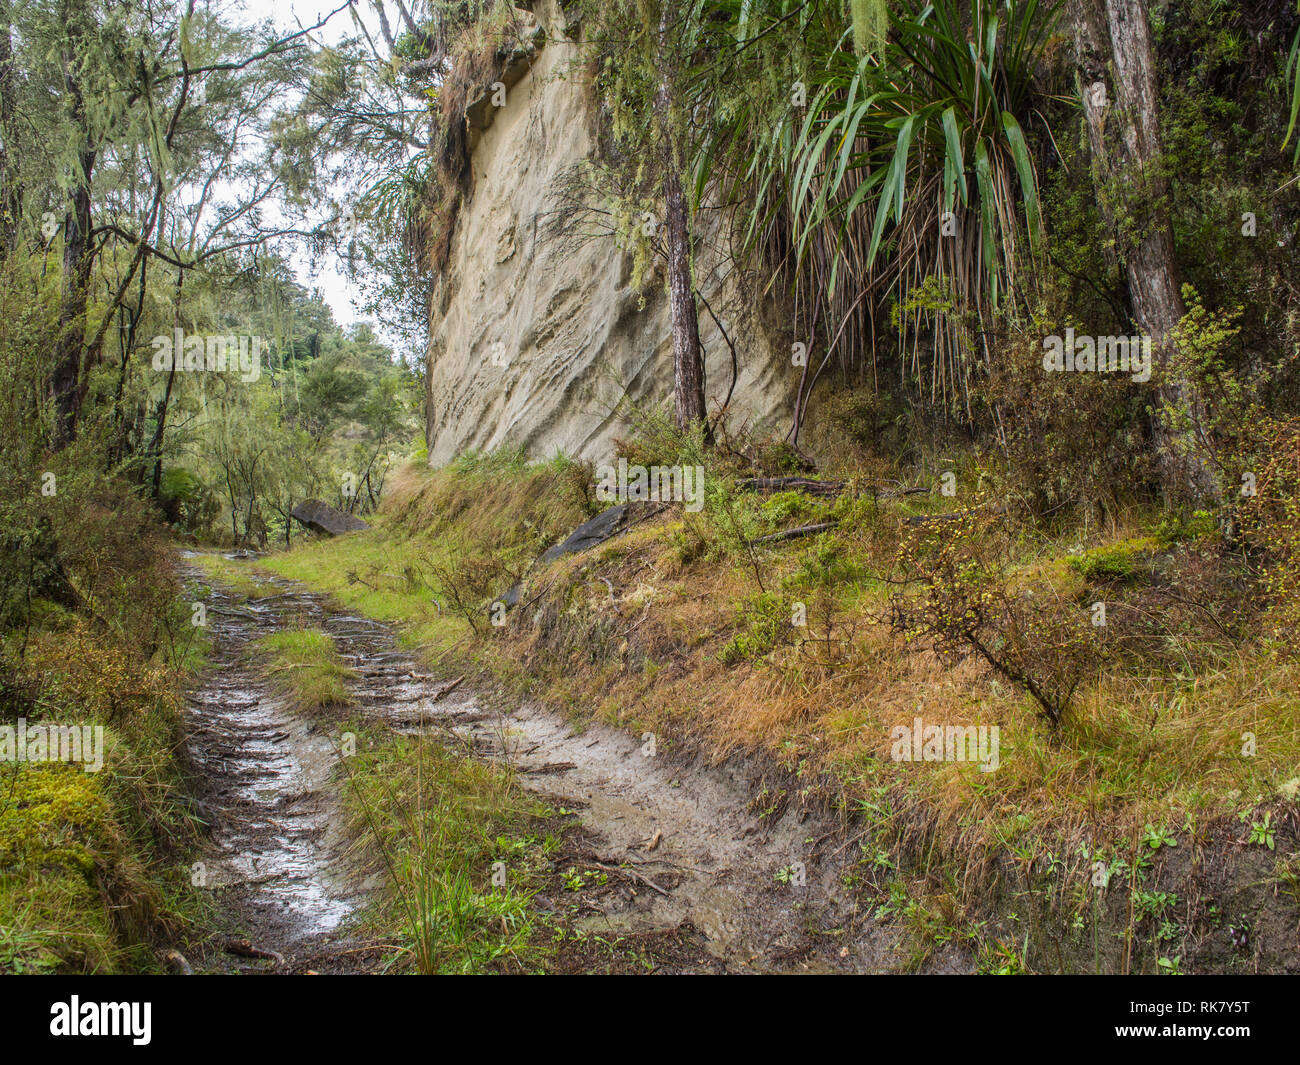 Dirt trail track through regenerating secondary forest growing on abandoned land,  sandstone cliff bluff,  Ahuahu Valley, Whanganui River, New Zealand - Stock Image